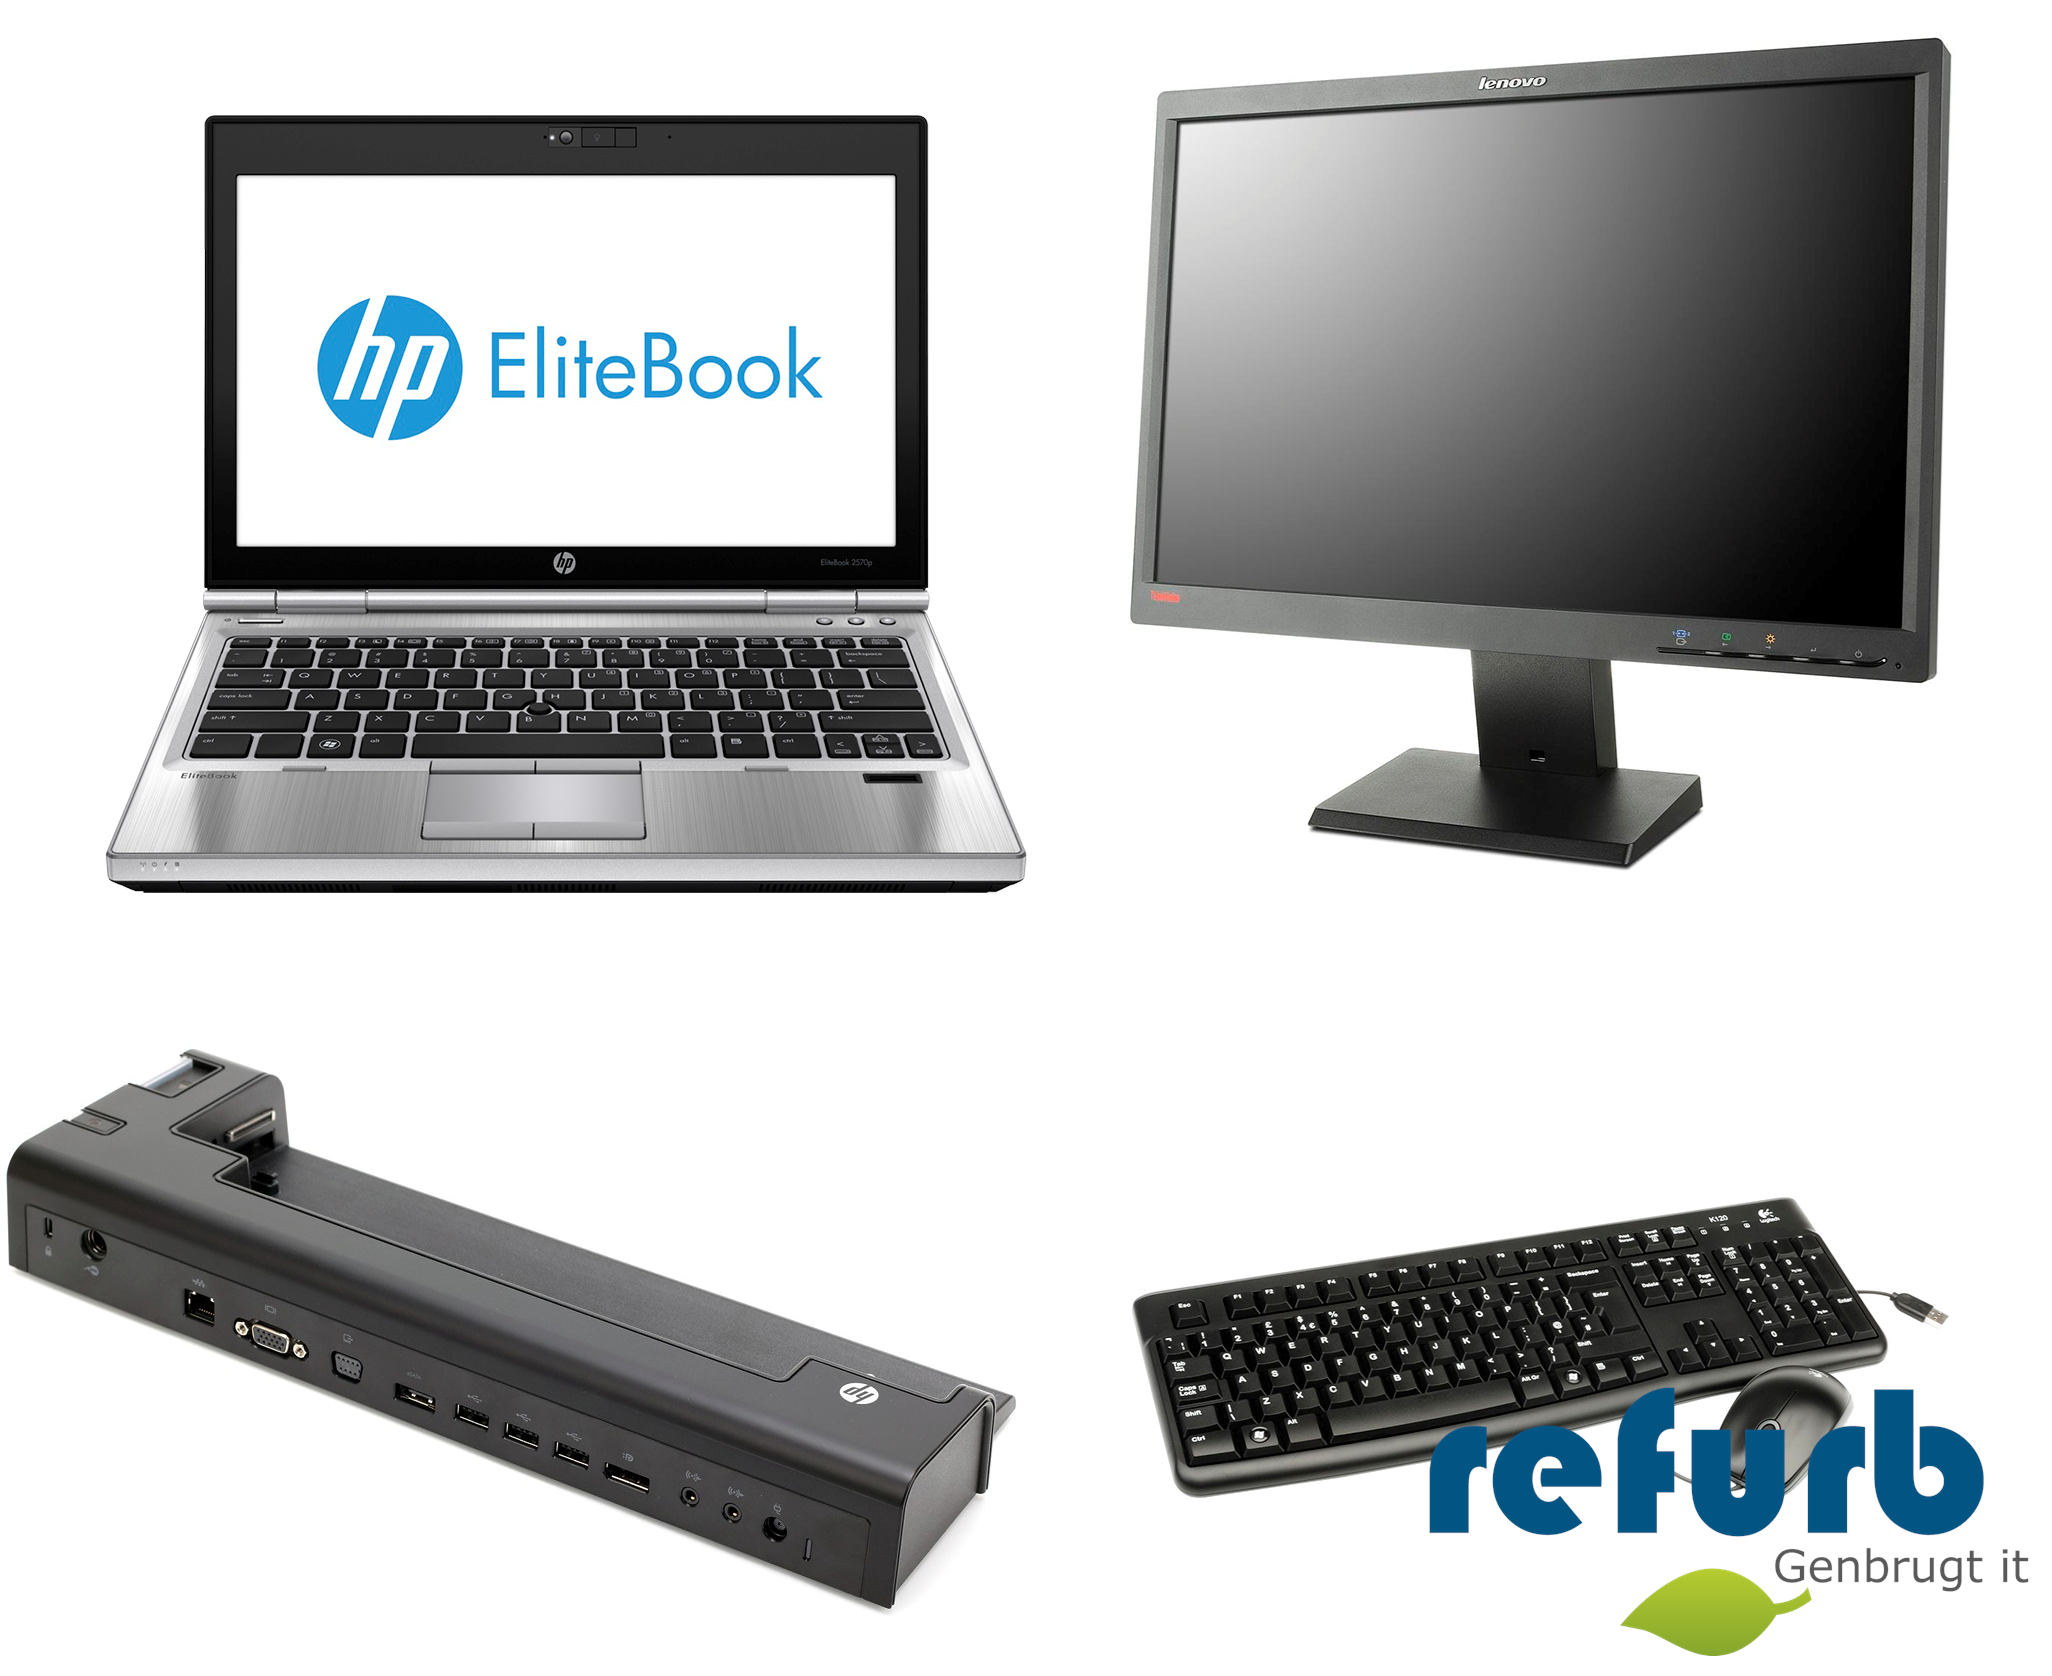 Hp elitebook 2570p kontorpakke fra Hp på refurb